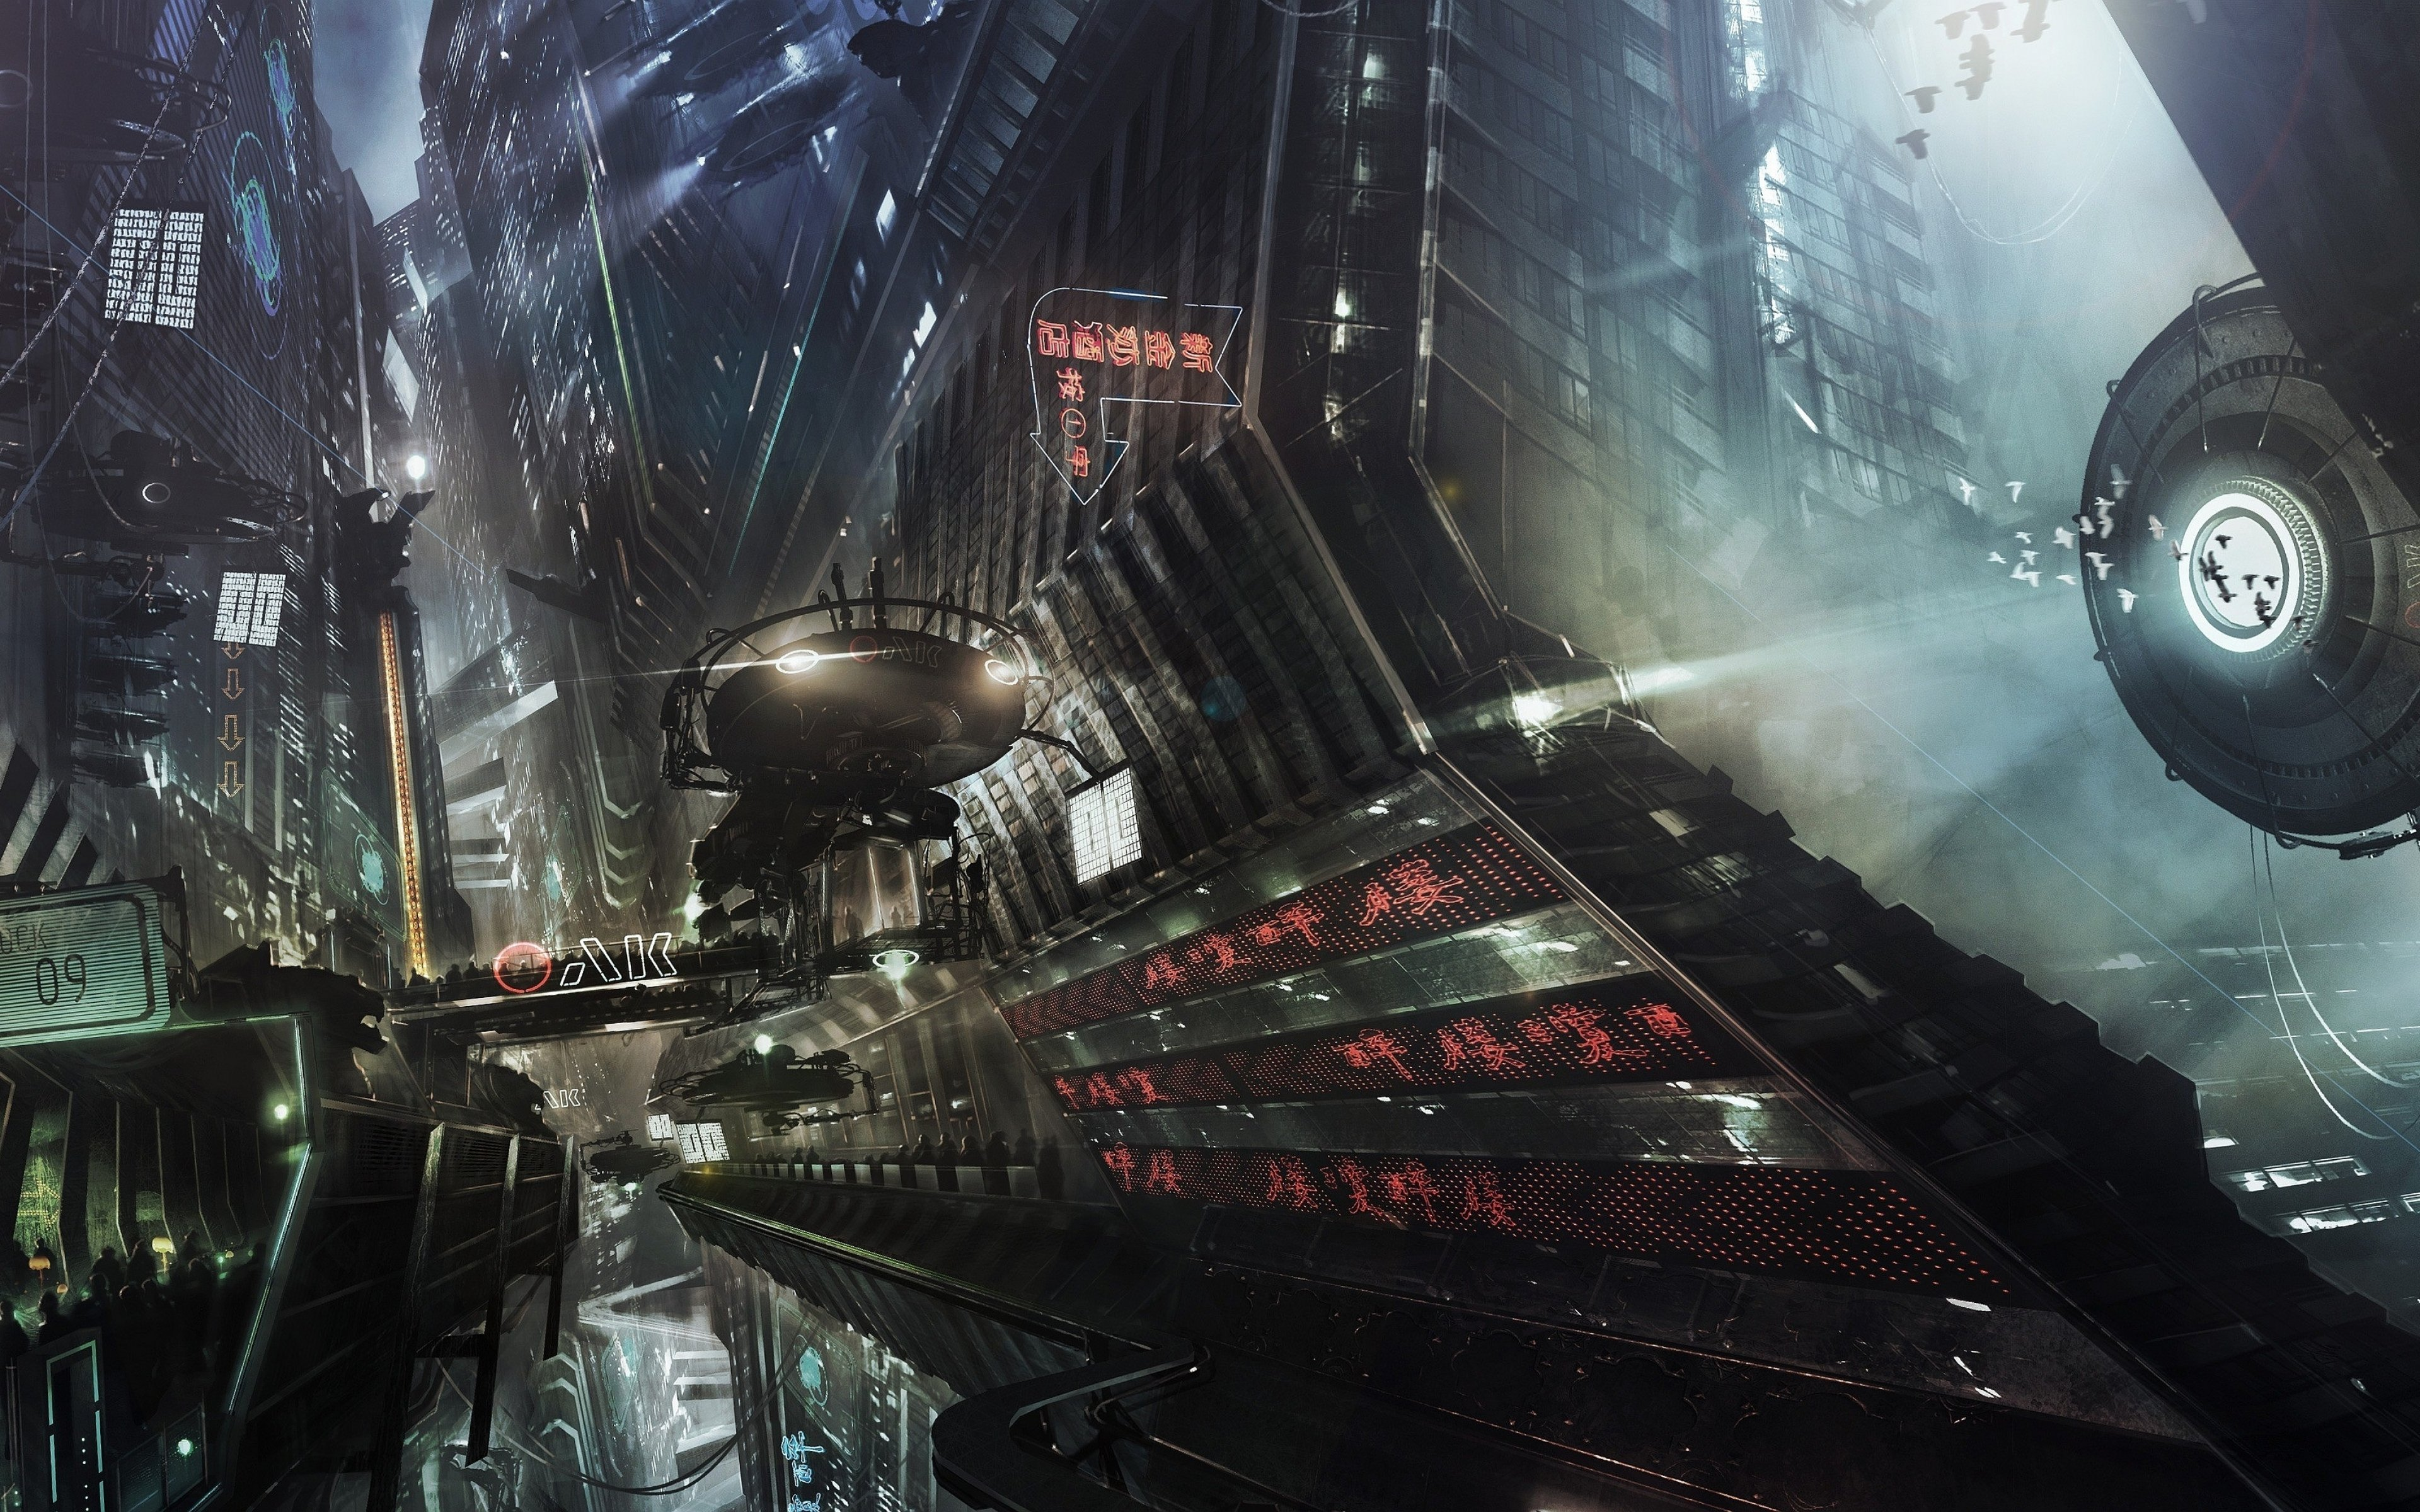 3840x2400 - Sci Fi City Wallpapers 31